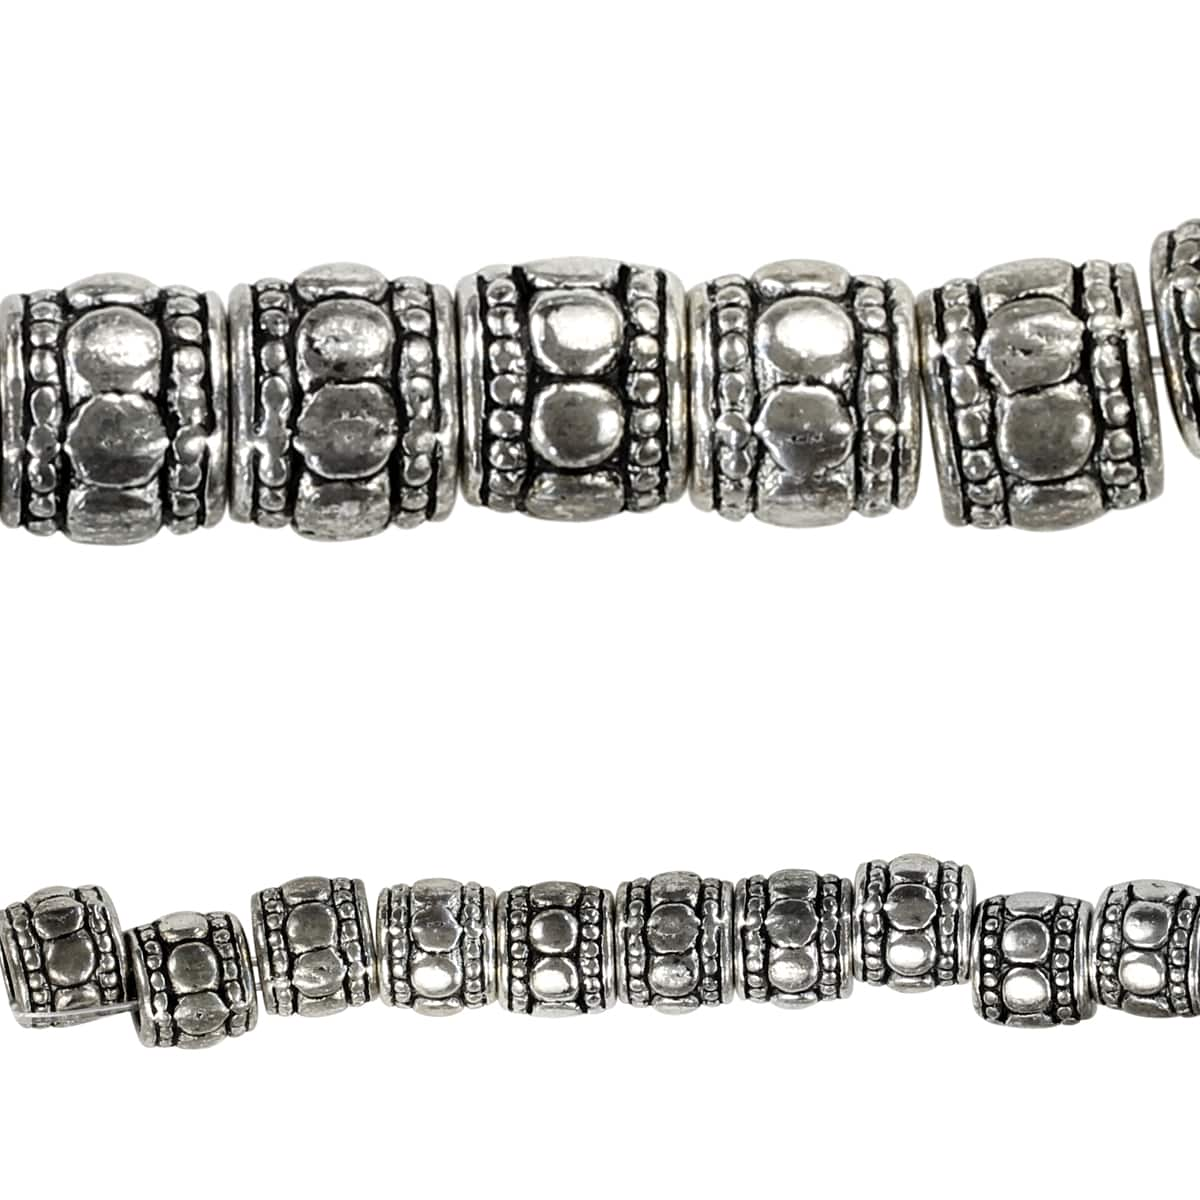 Bead Gallery® Sterling Silver Plated Tube Beads by Bead Gallery